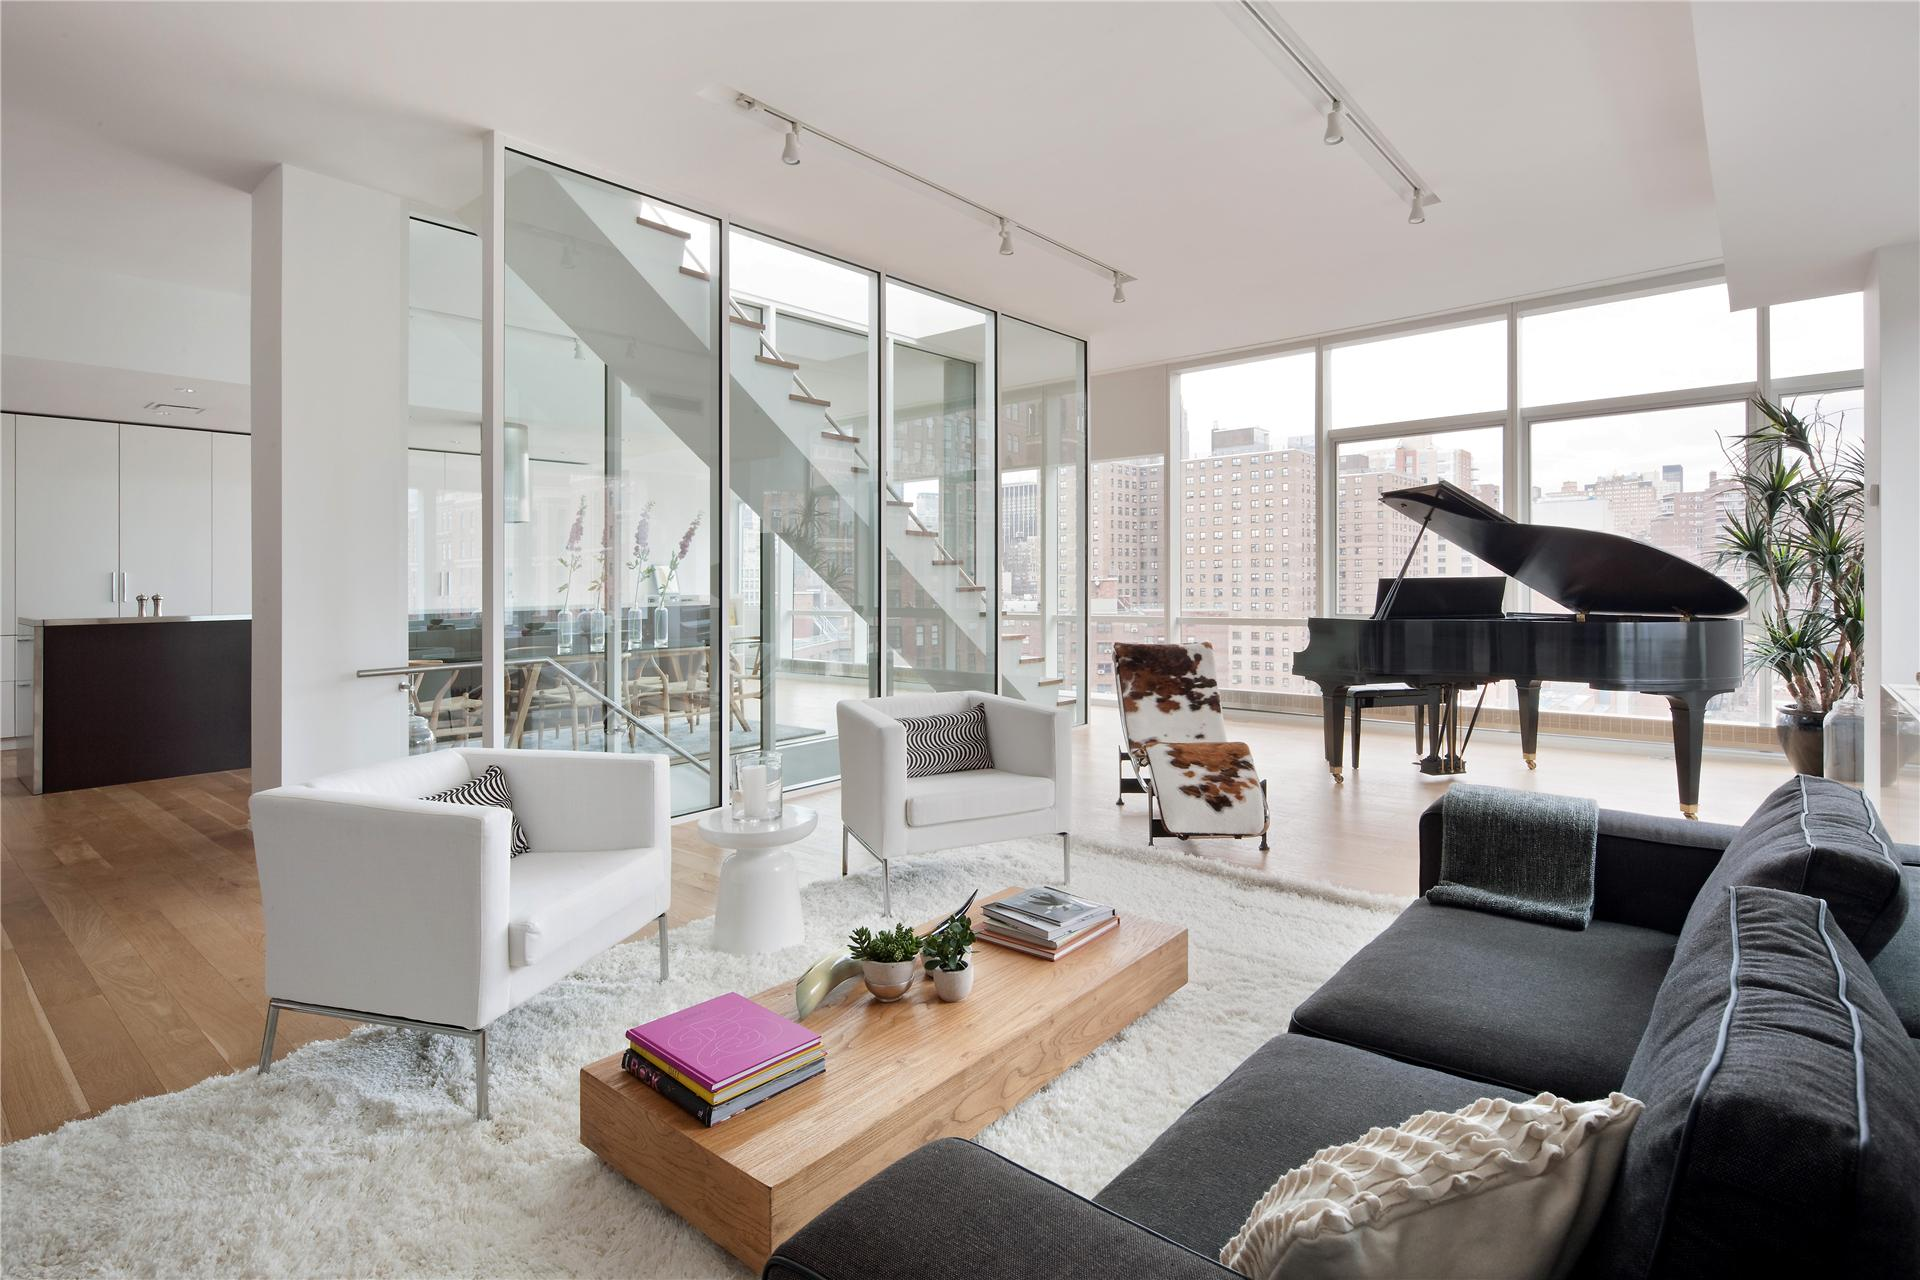 Un duplex new york planete deco a homes world - Deco maison appartement en duplex widawscy ...